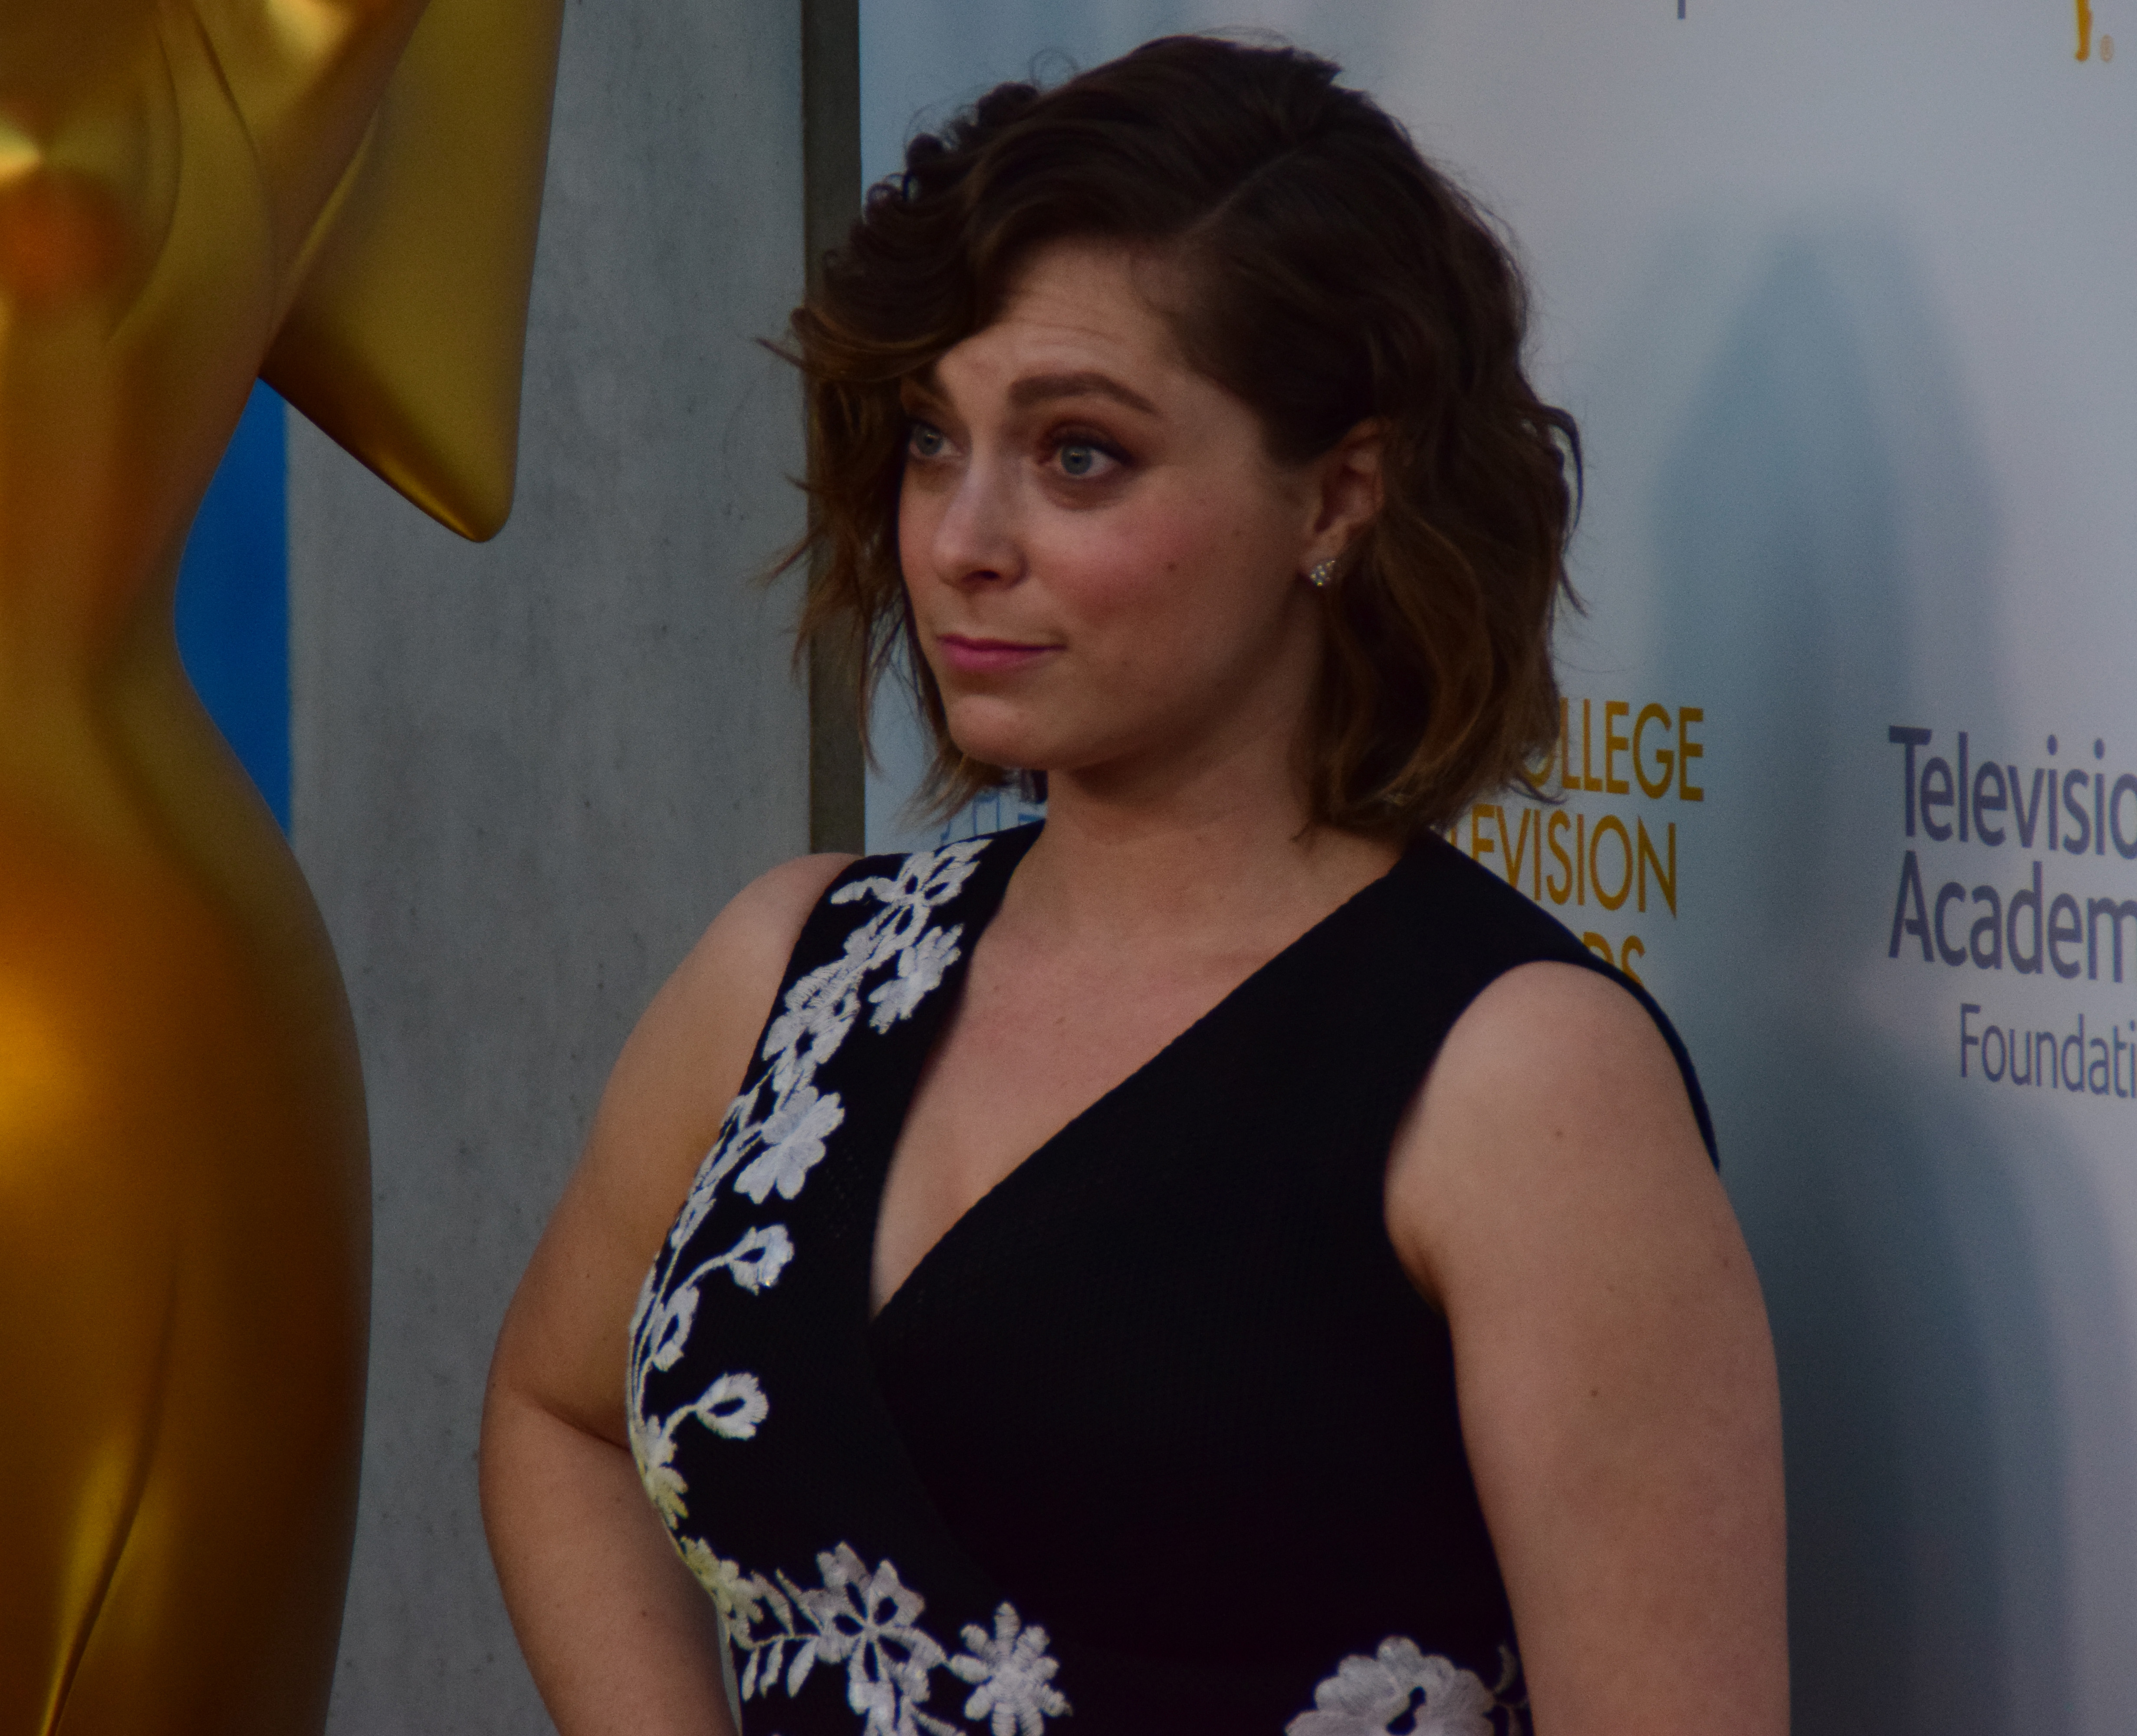 Chris Meloni Brian Bloom Stunning file:rachel bloom at 37th college television awards